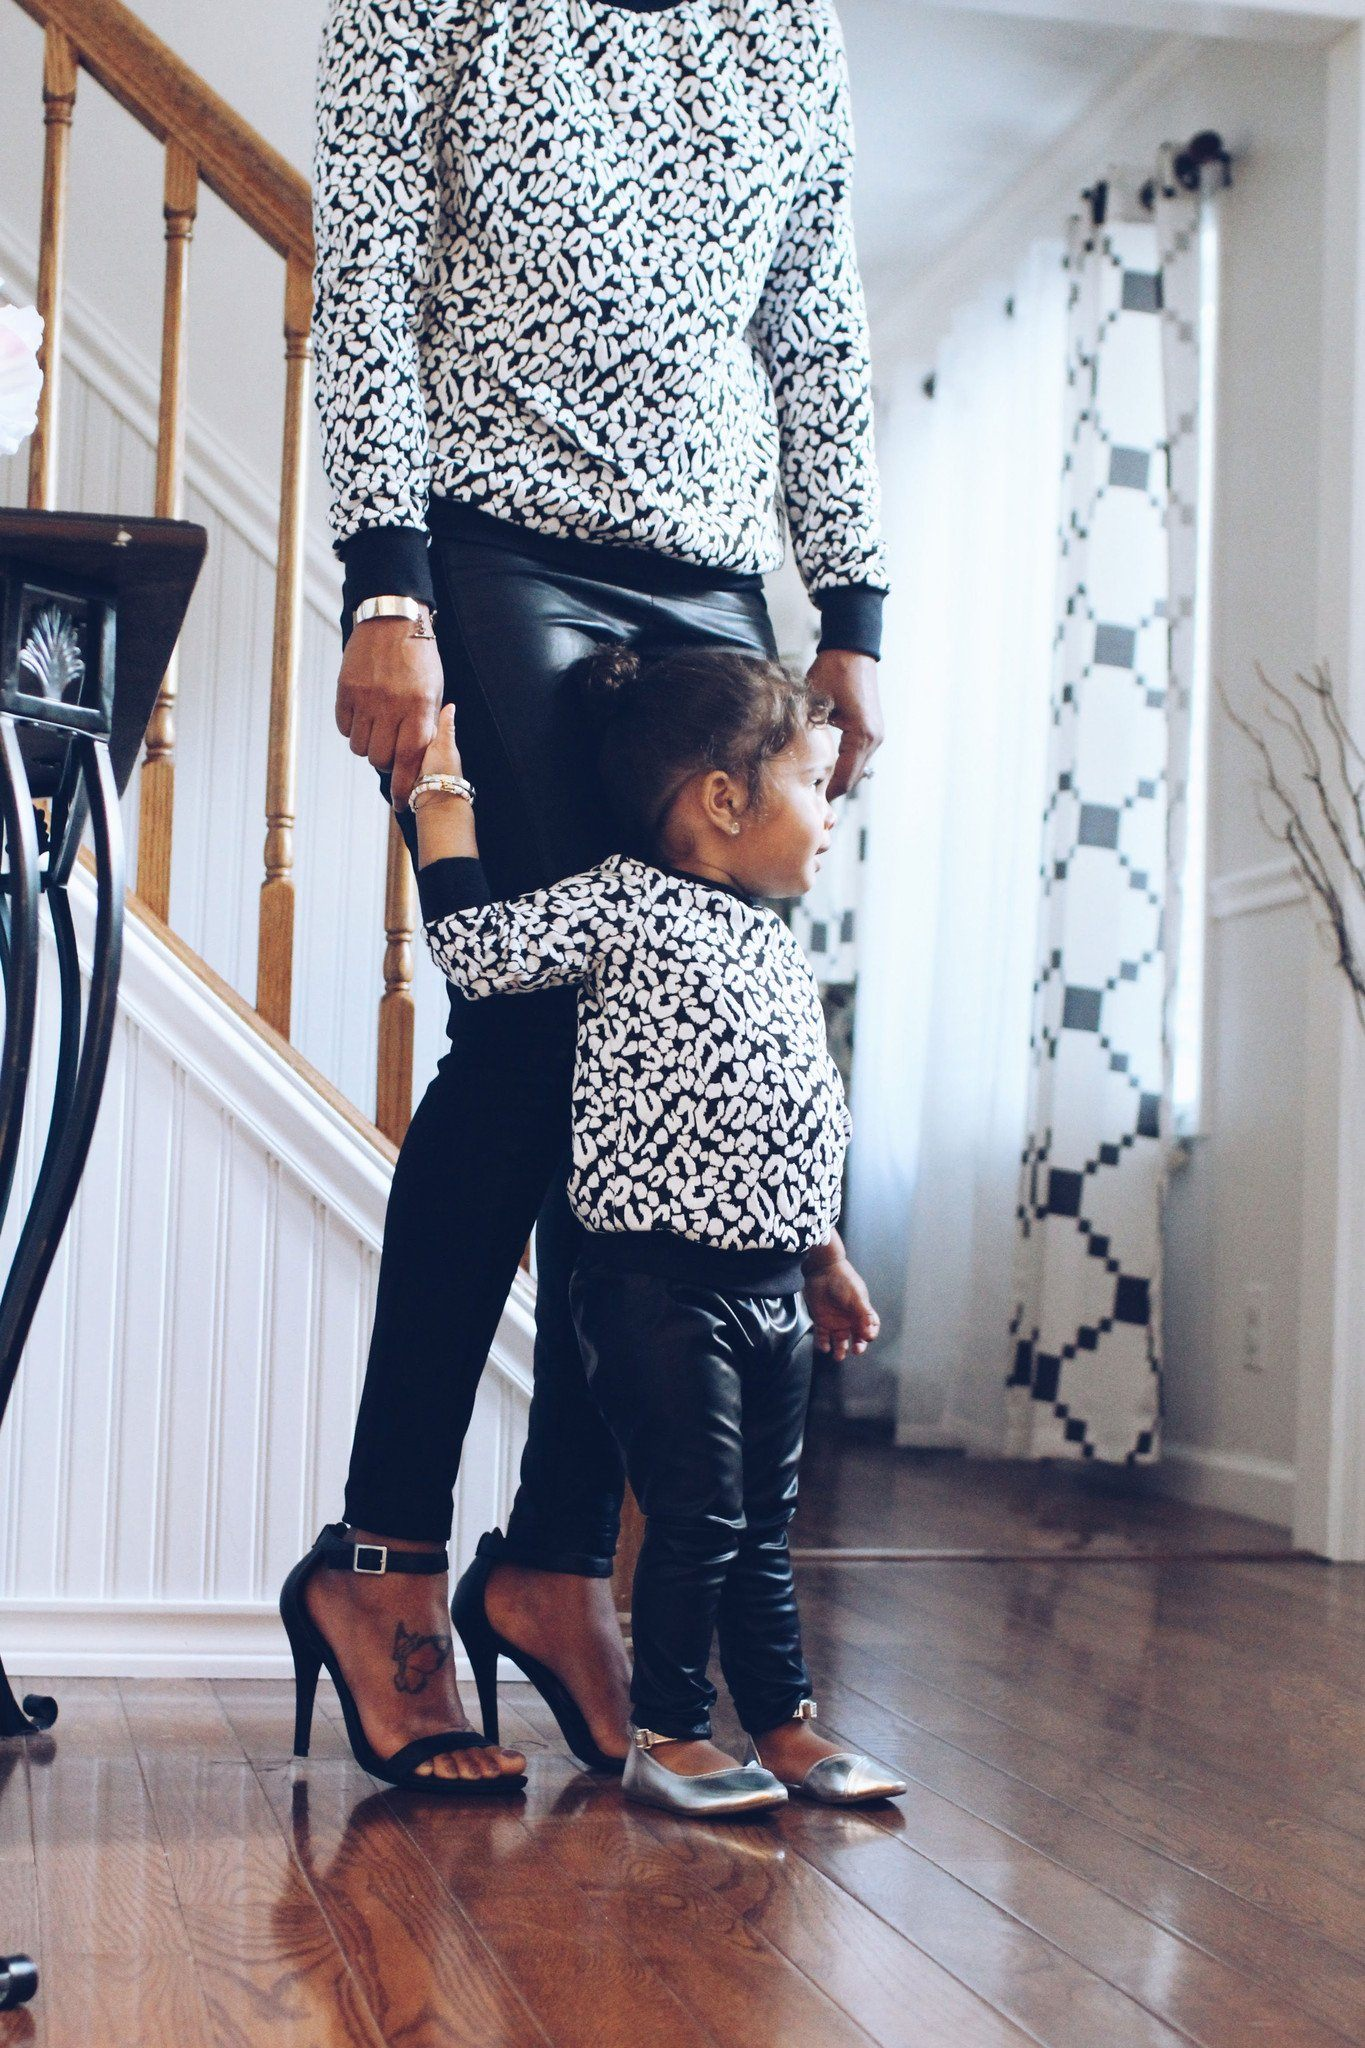 mommy baby matching tops fall outfit black white cheetah sweaters mifille. Black Bedroom Furniture Sets. Home Design Ideas